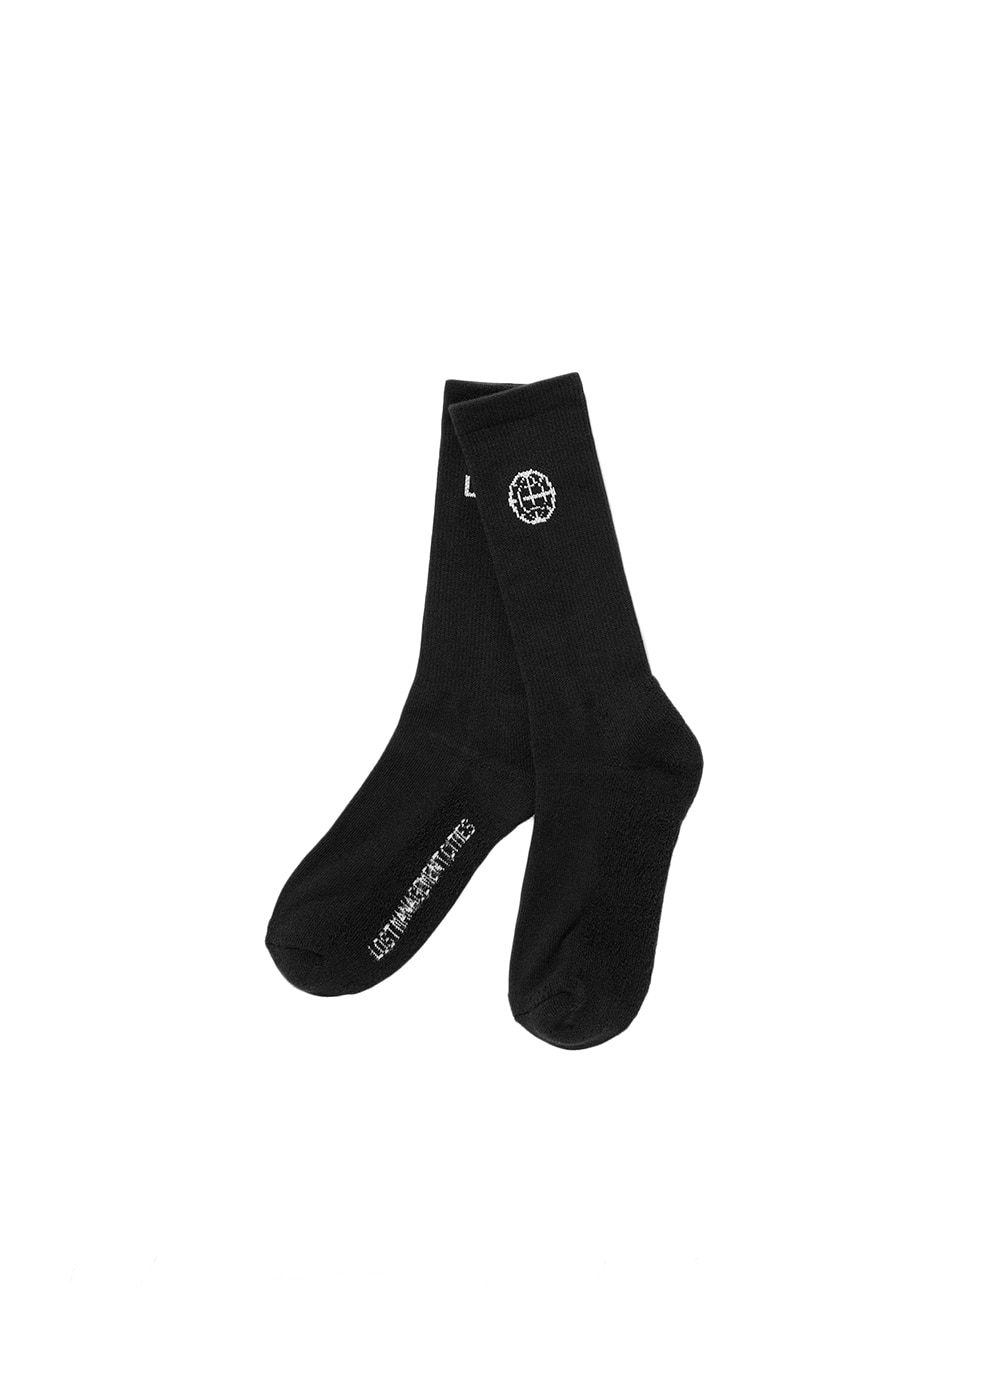 LMC BASIC SOCKS black